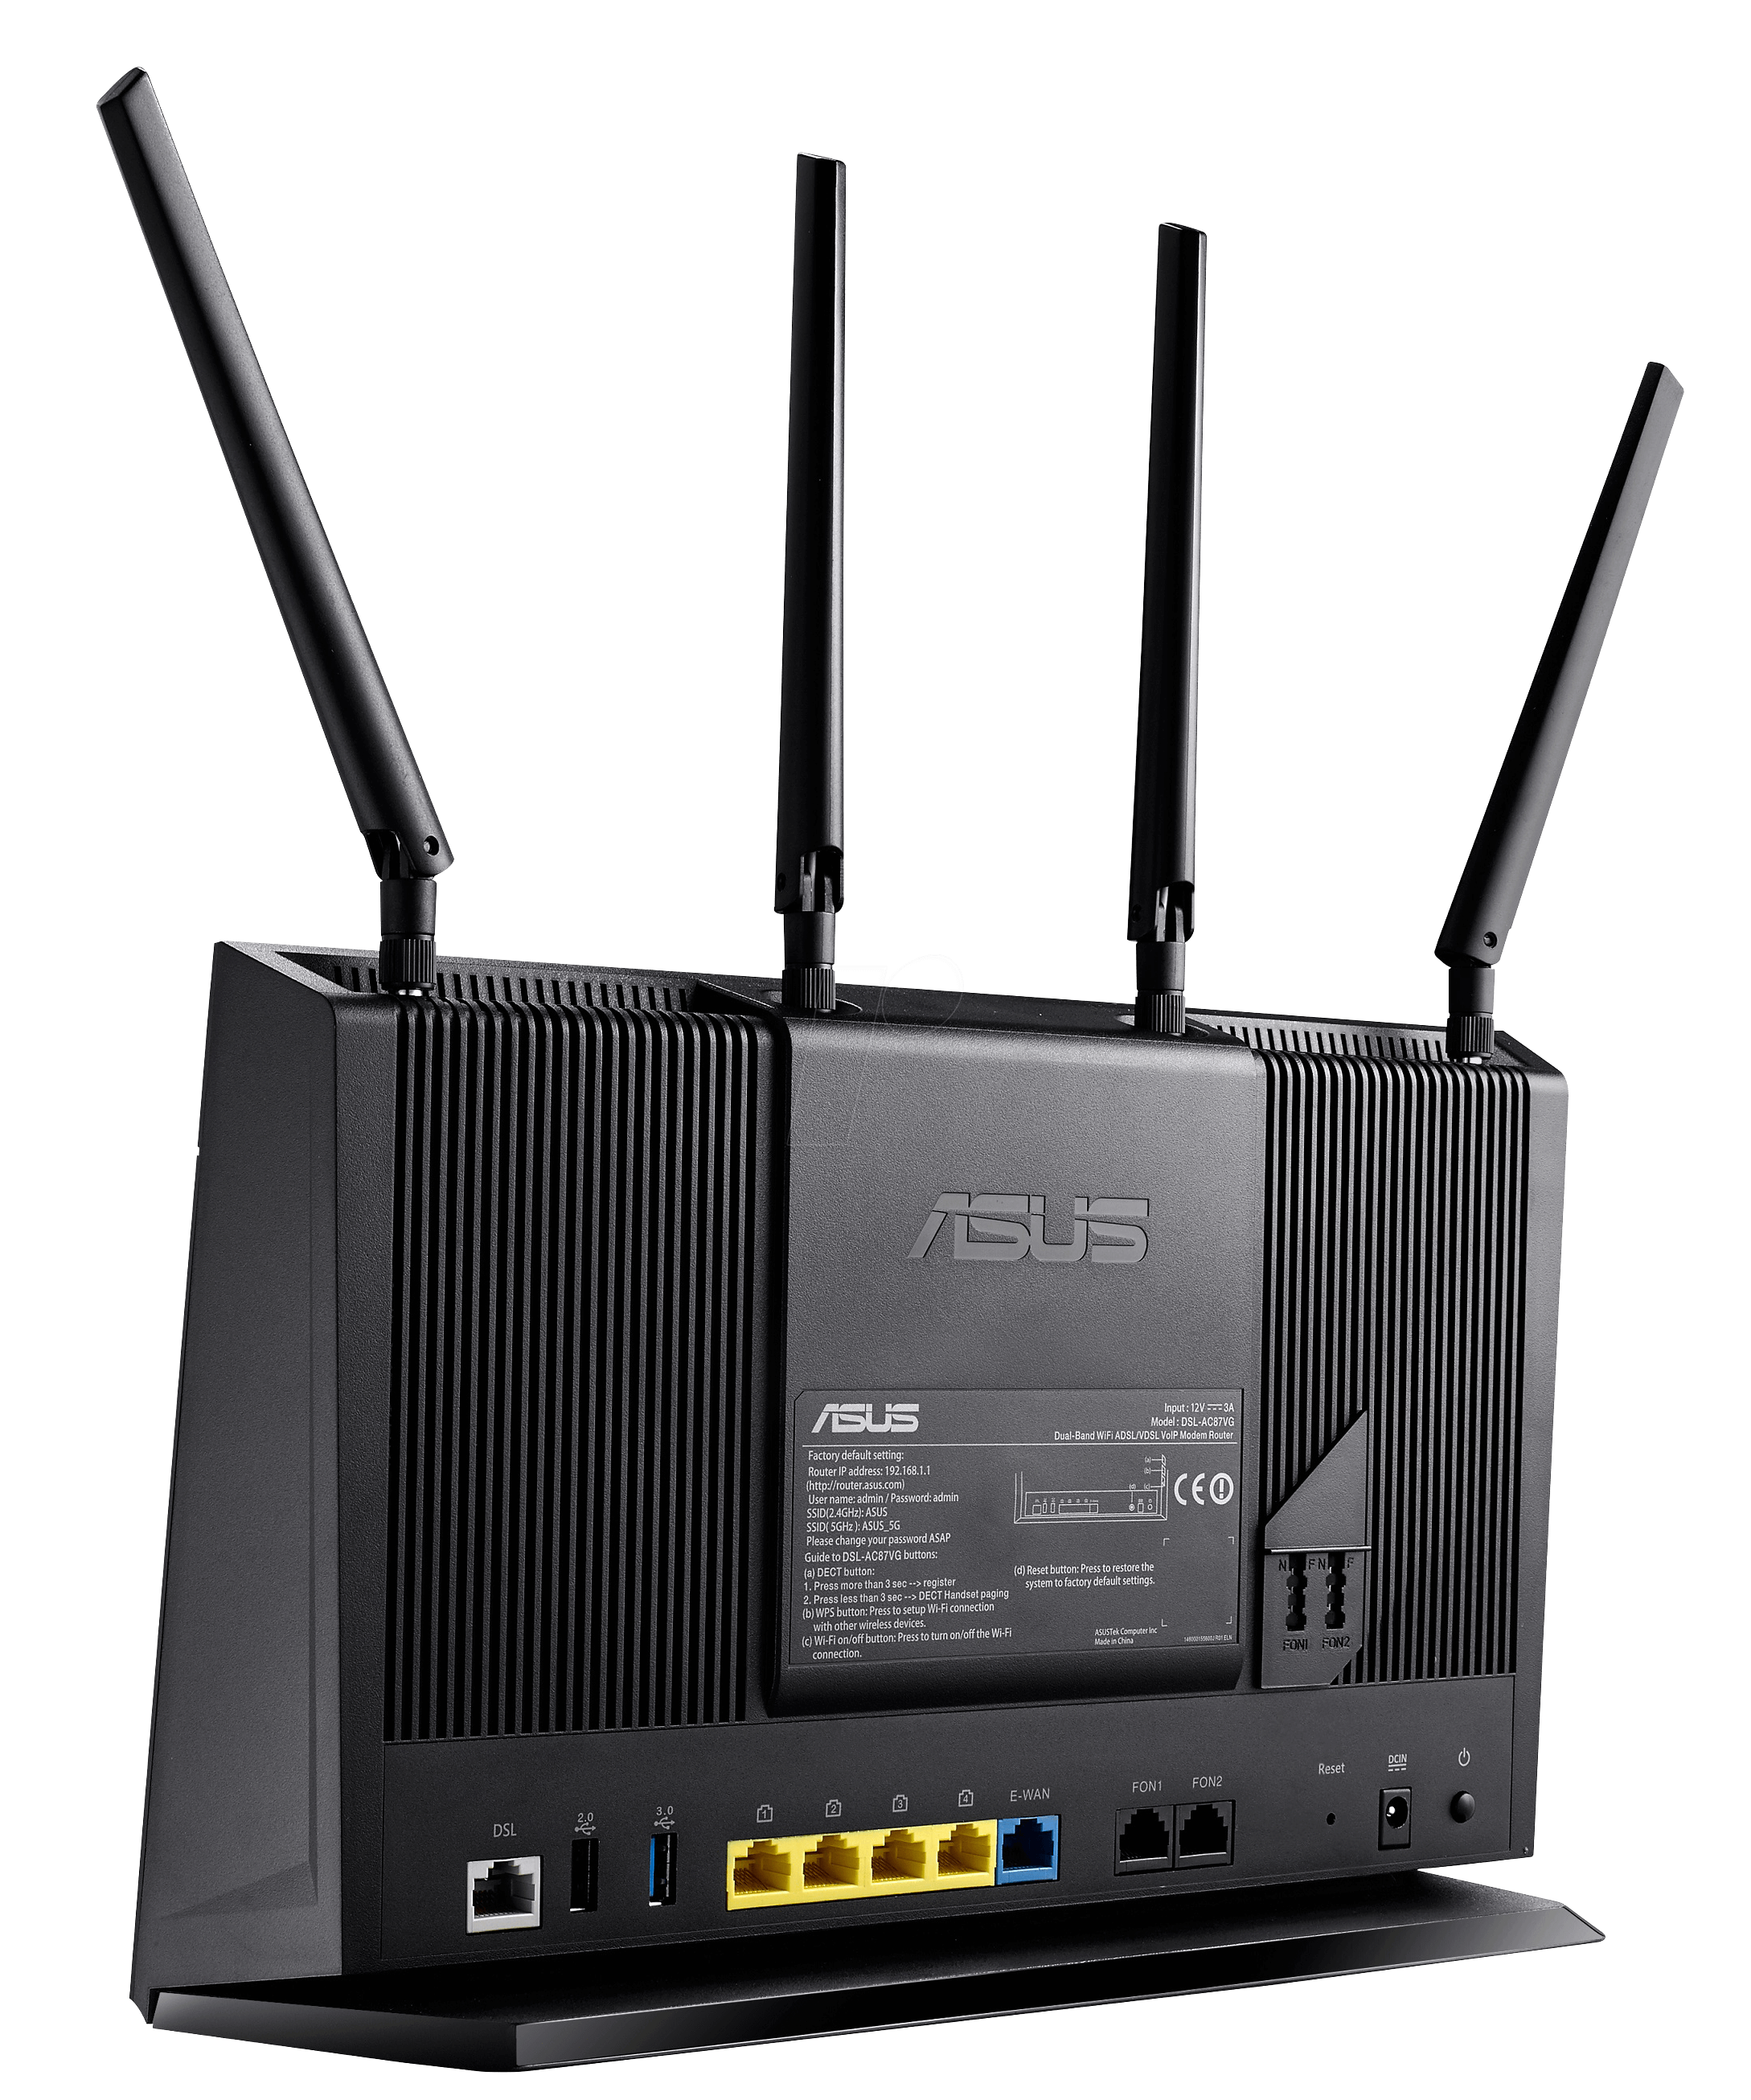 asus dsl ac87vg ac1900 adsl vdsl wifi router at. Black Bedroom Furniture Sets. Home Design Ideas